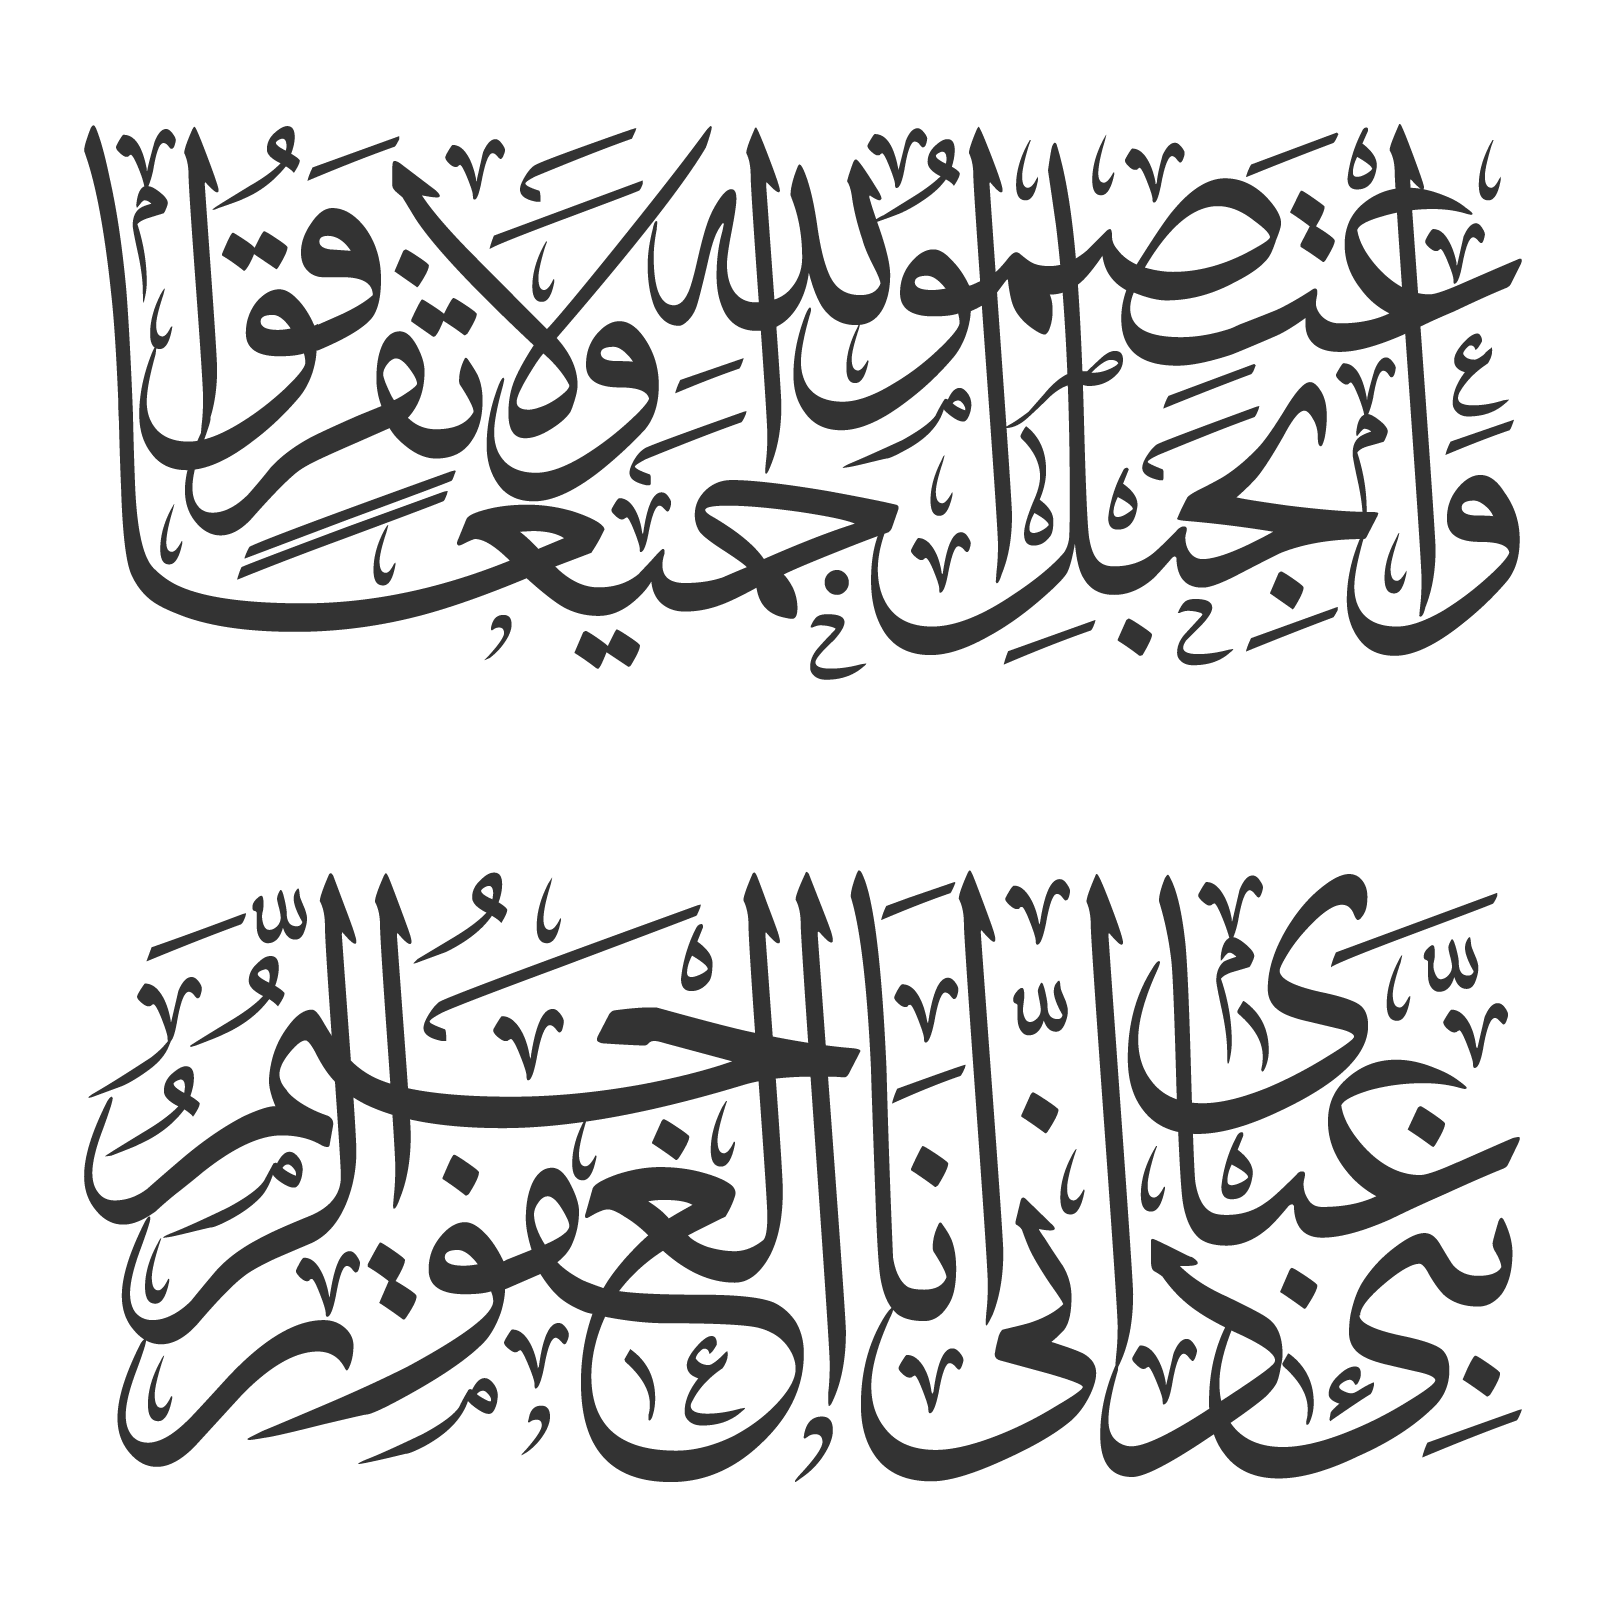 scripts alquran alkarim islamic svg eps psd ai pdf png vector download free #islamic #islam #arab #arabic #vector #vectors #Quran #design #fonts #font #ramadan #hijri #year